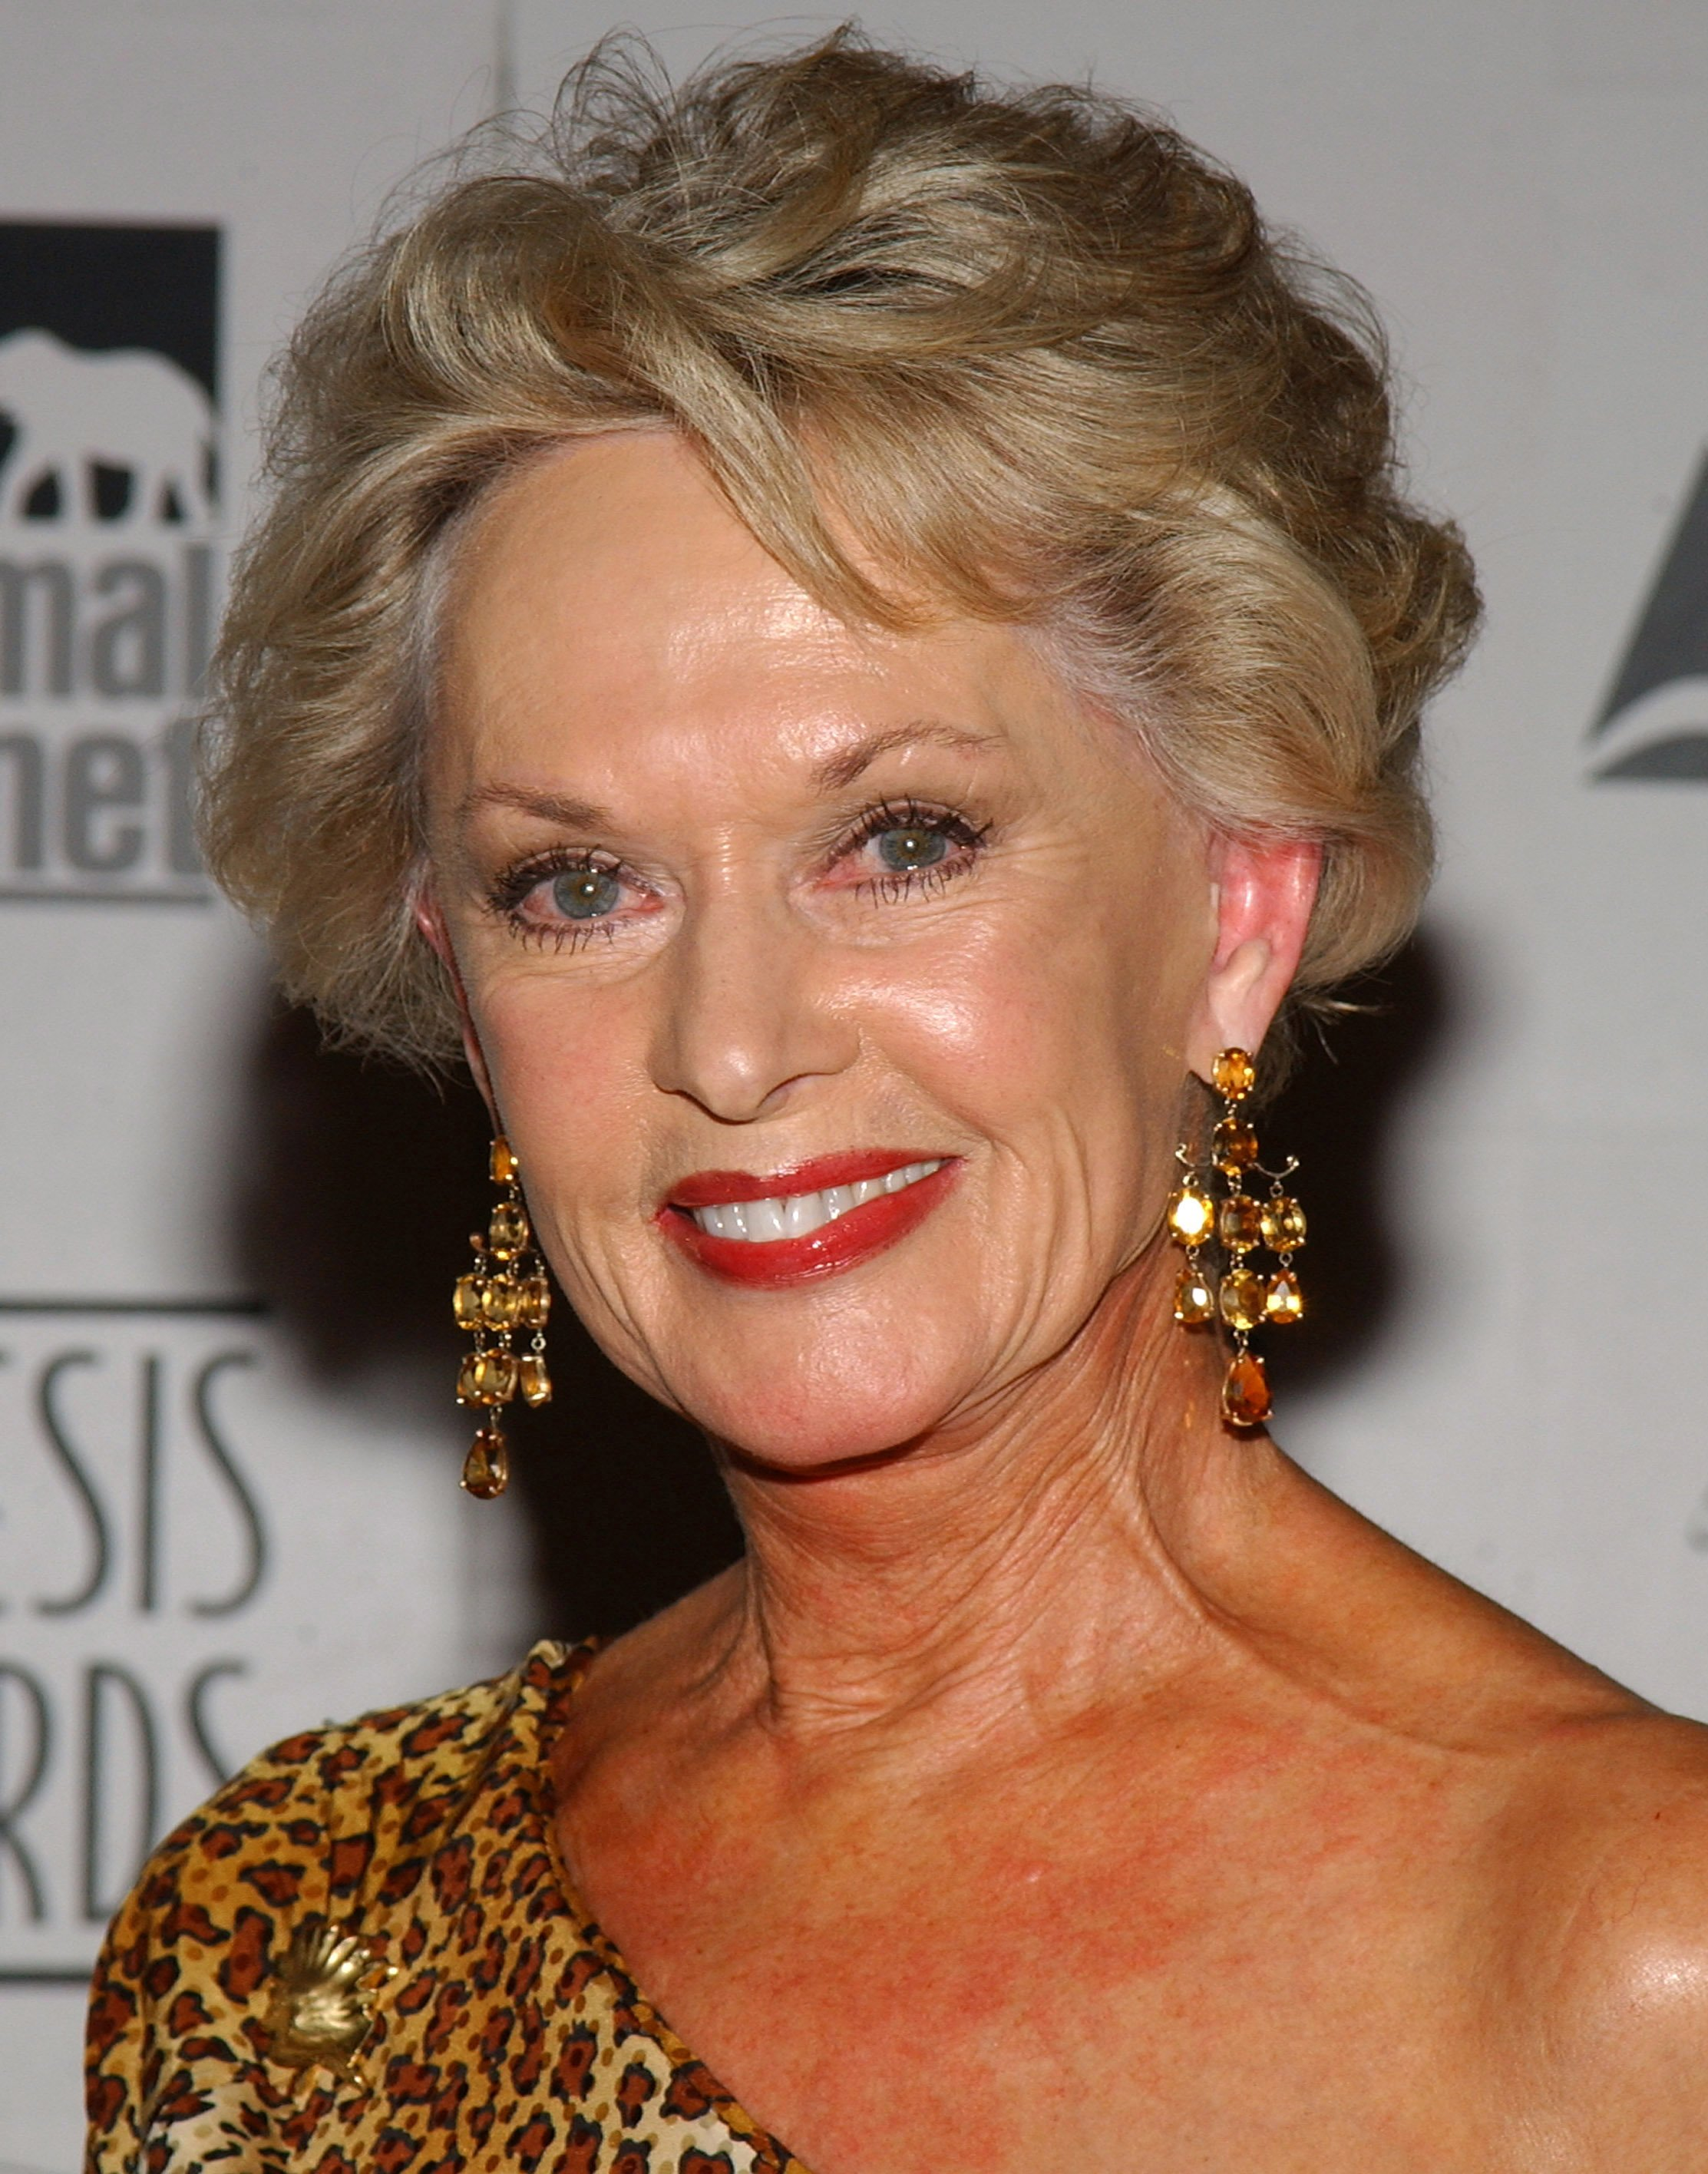 Tippi Hedren during The 18th Annual Genesis Awards and 50th Anniversary of the Humane Society of the United States | Photo: Getty Images